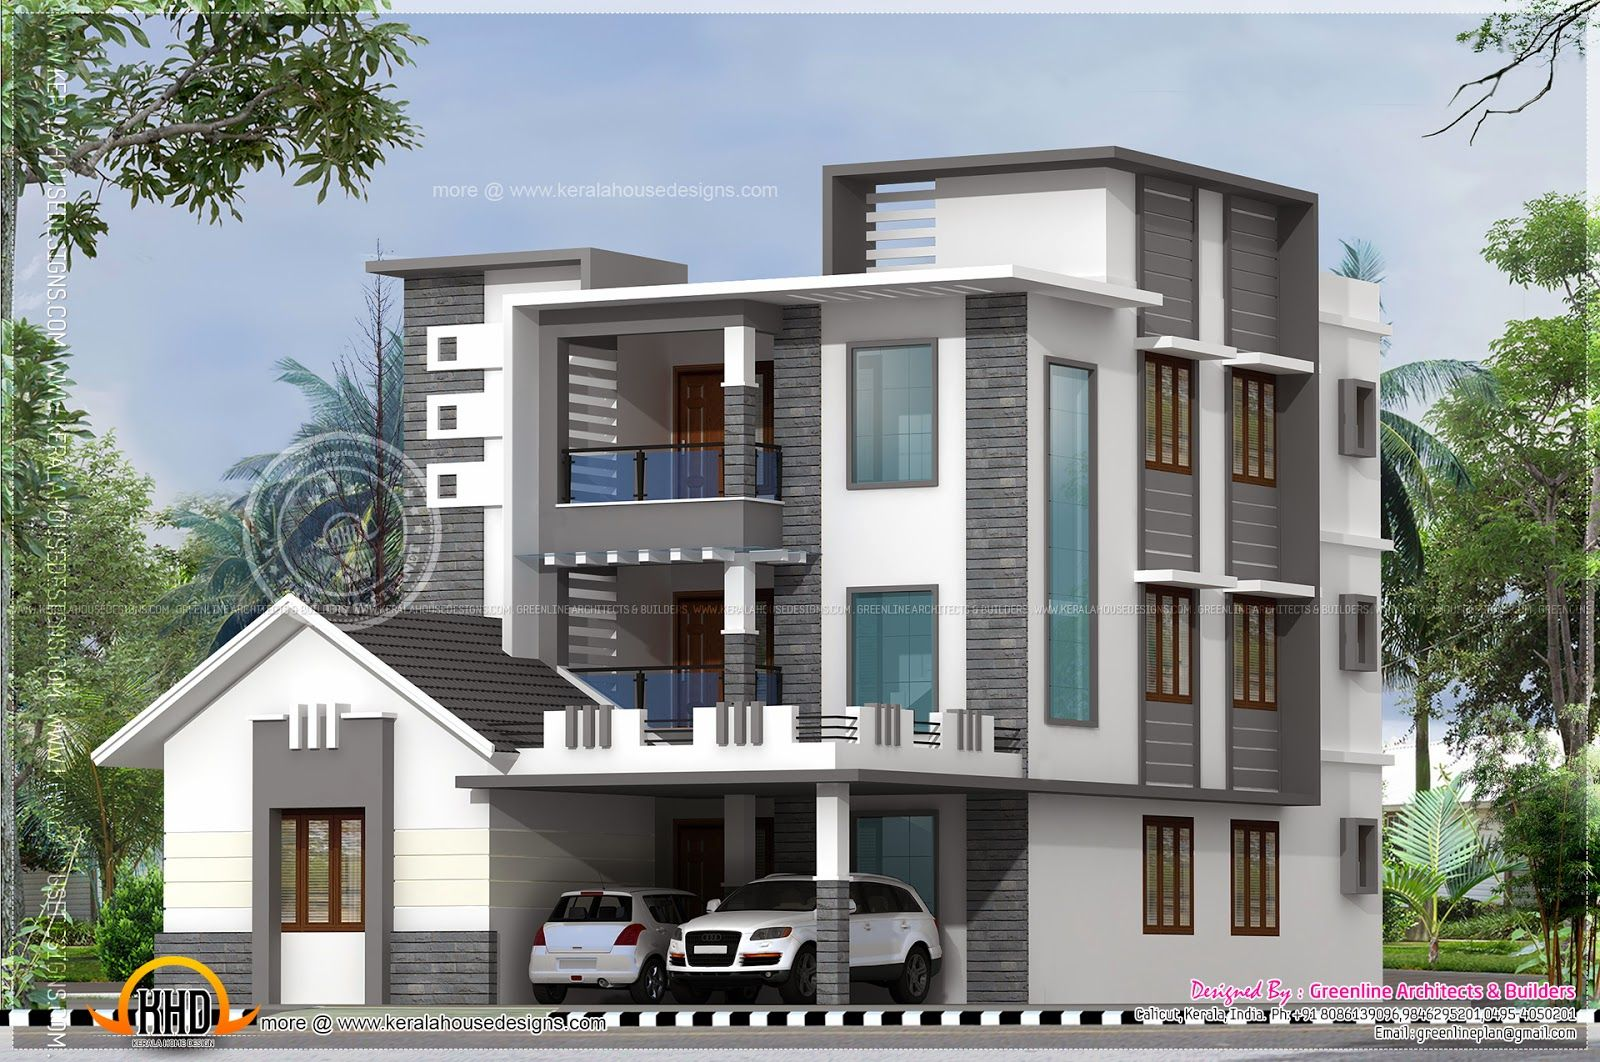 3600 square feet 8 bedroom three storied modern contemporary house design by greenline architects builders calicut kerala